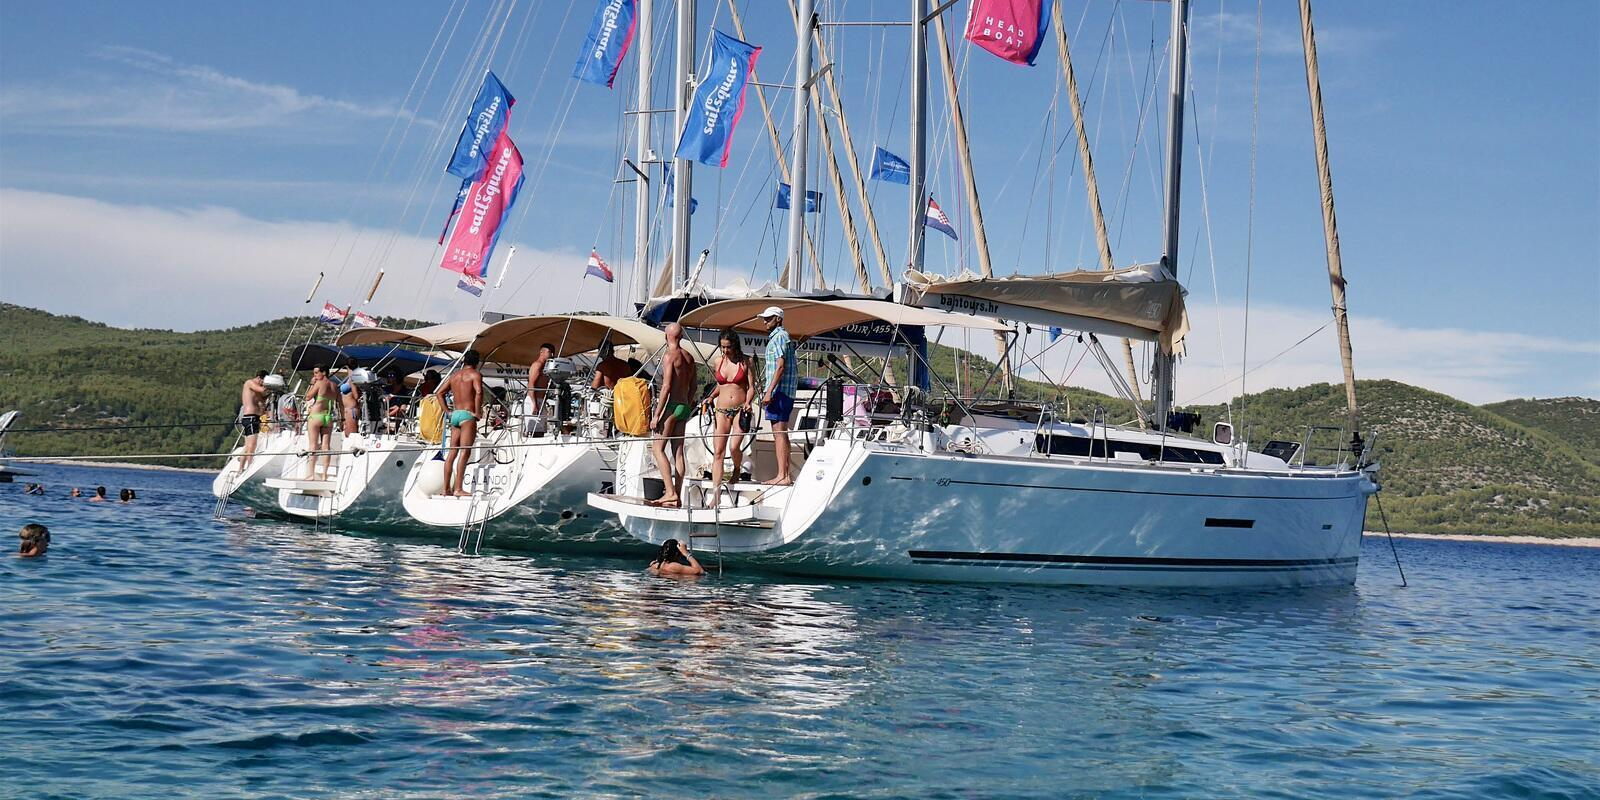 Flotilla on the routes of Ulysses in Ionian Greece - 1st week